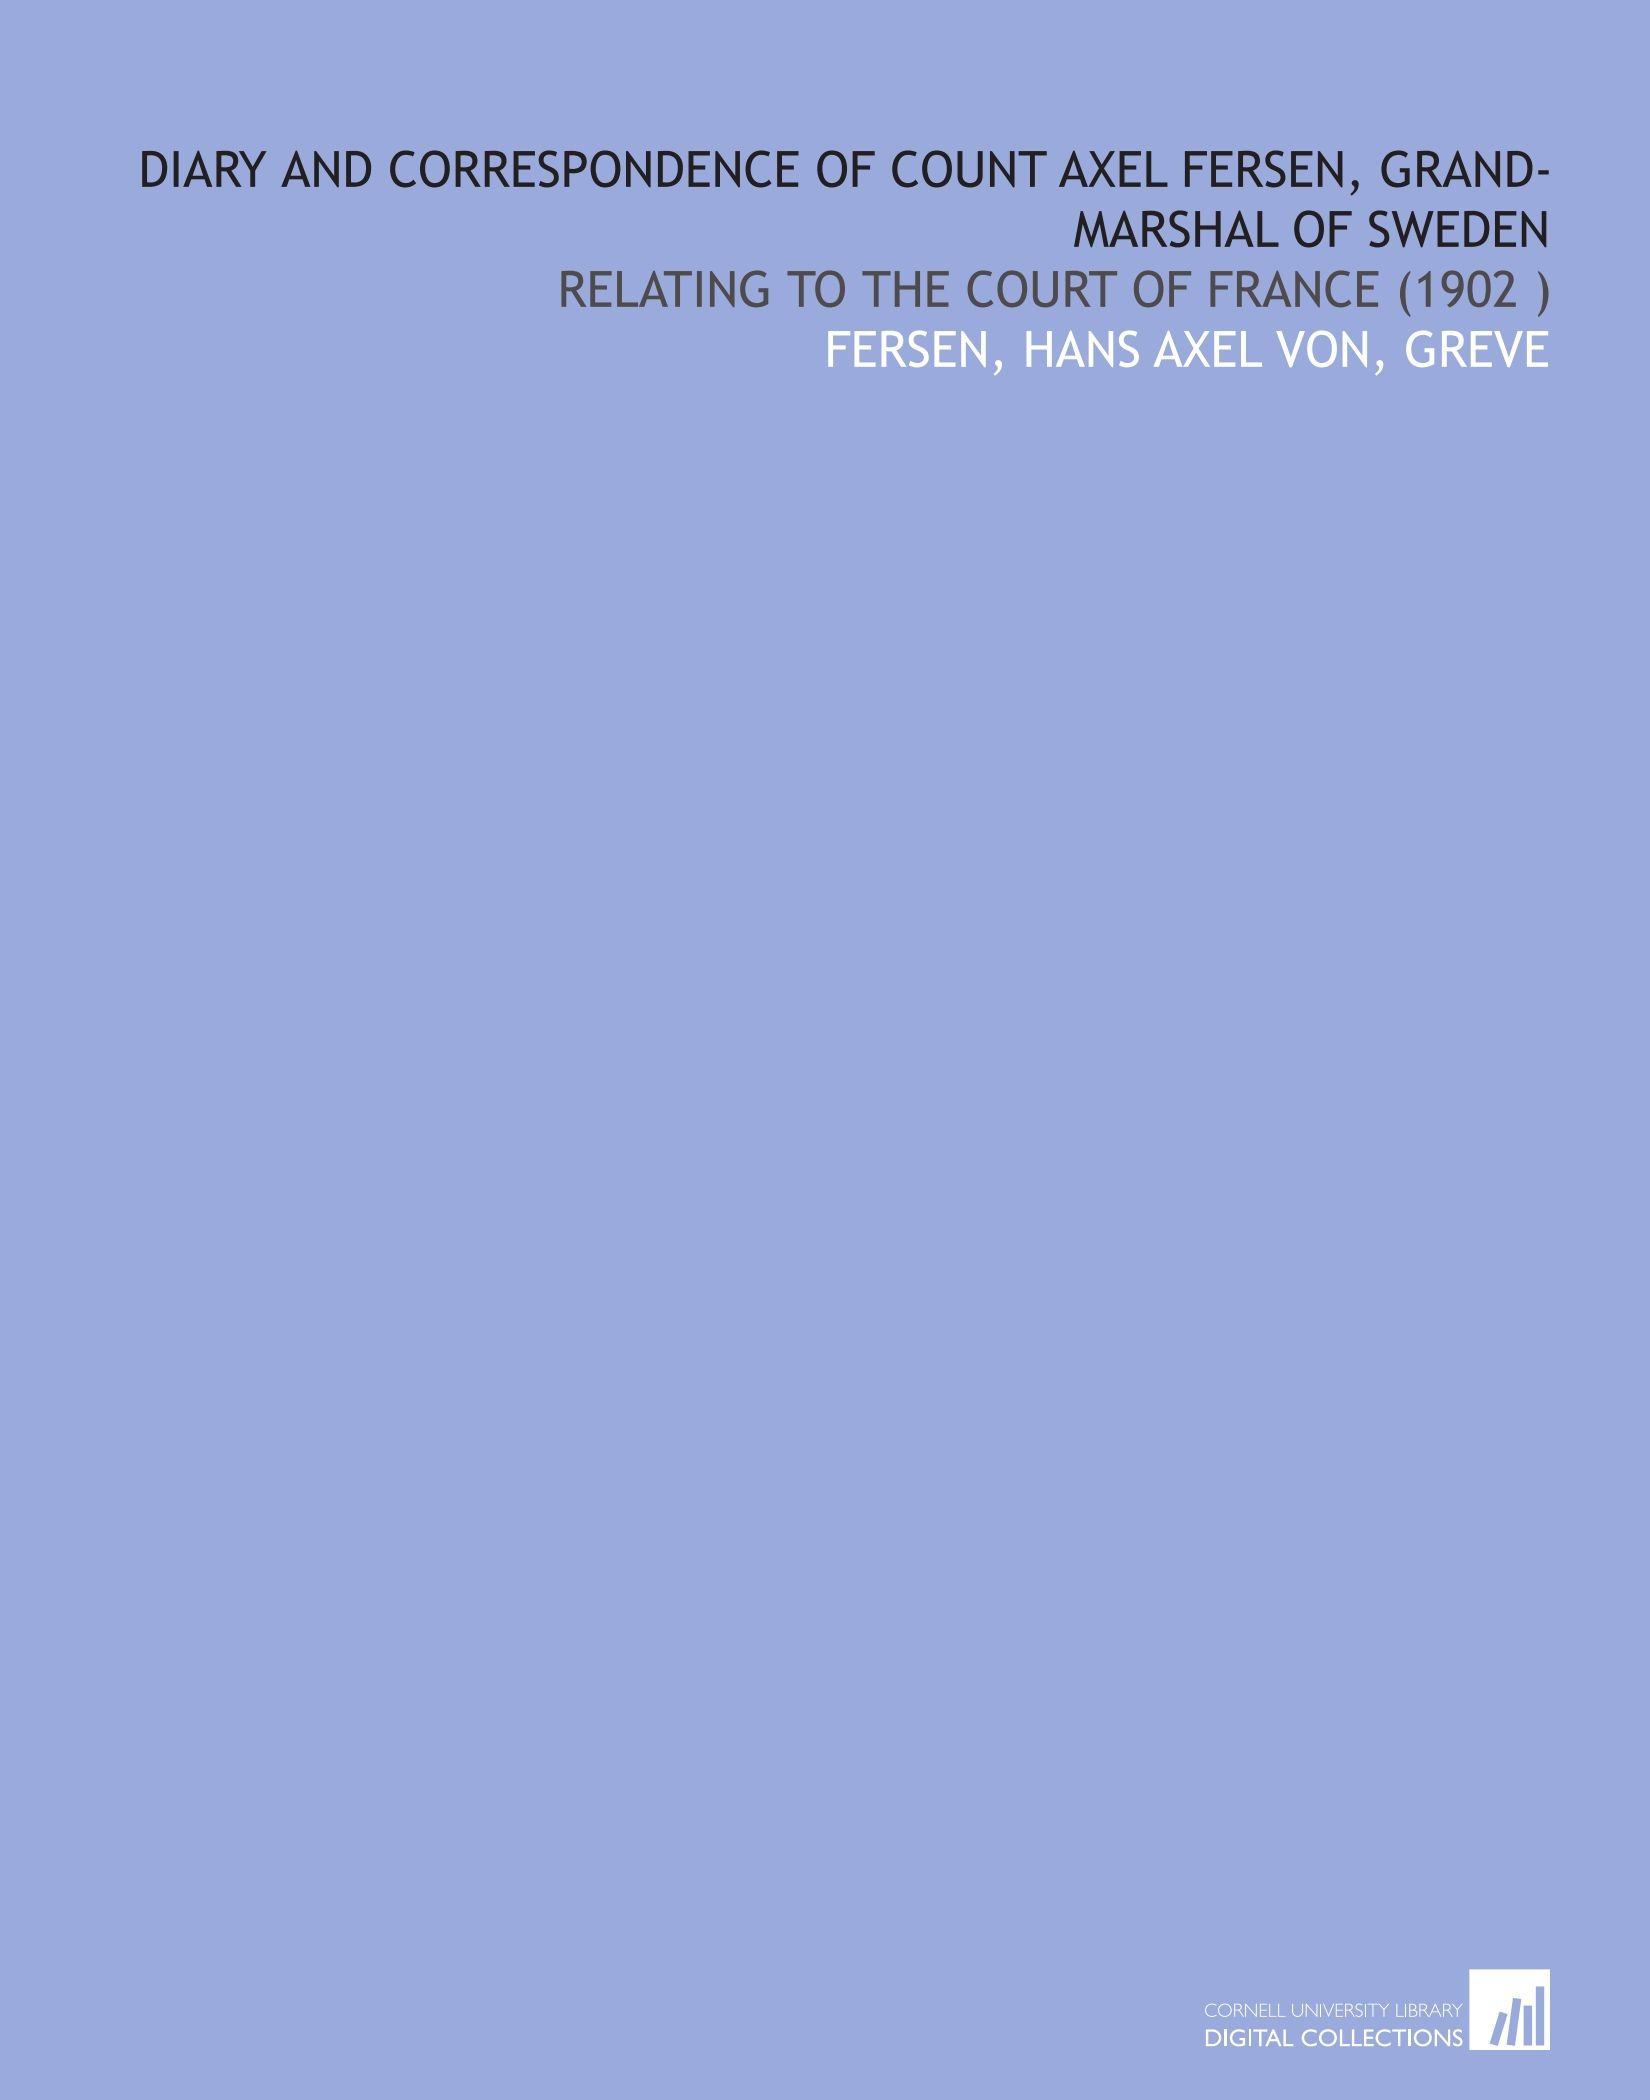 Amazon.fr - Diary and Correspondence of Count Axel Fersen, Grand-Marshal of  Sweden: Relating to the Court of France (1902) - Hans Axel von, greve, .